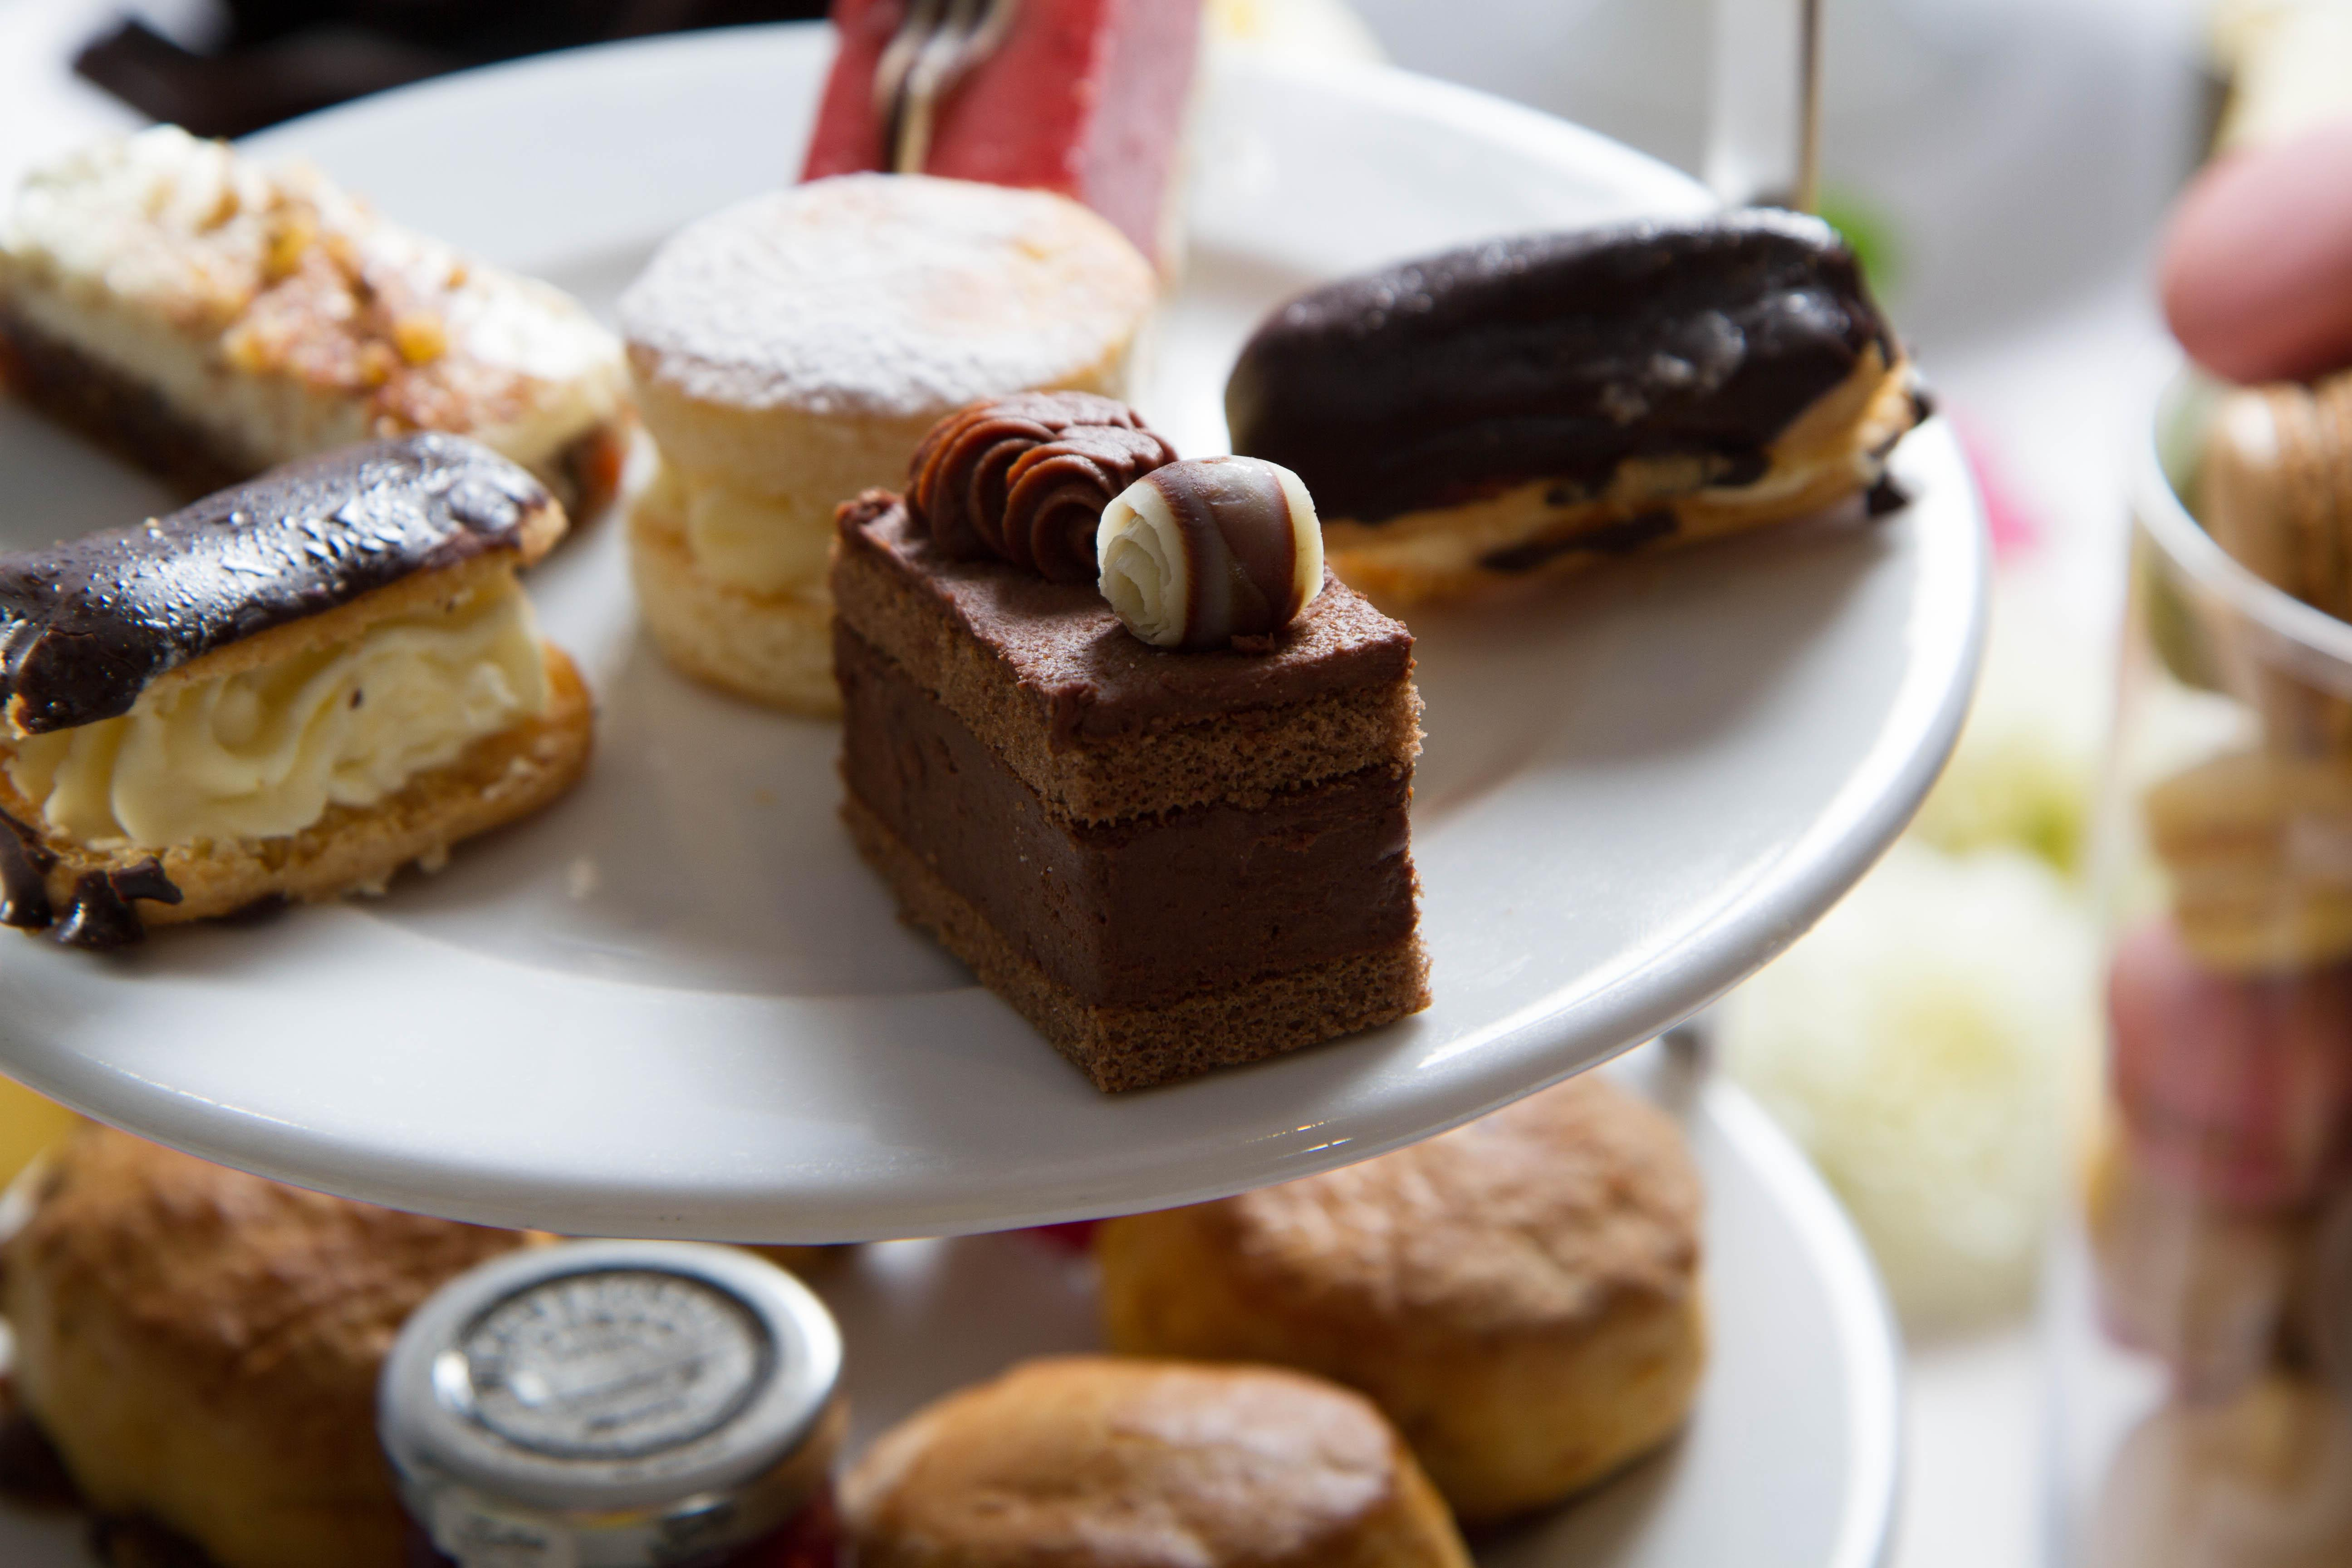 Patisserie Valerie - Sheffield - South Yorkshire